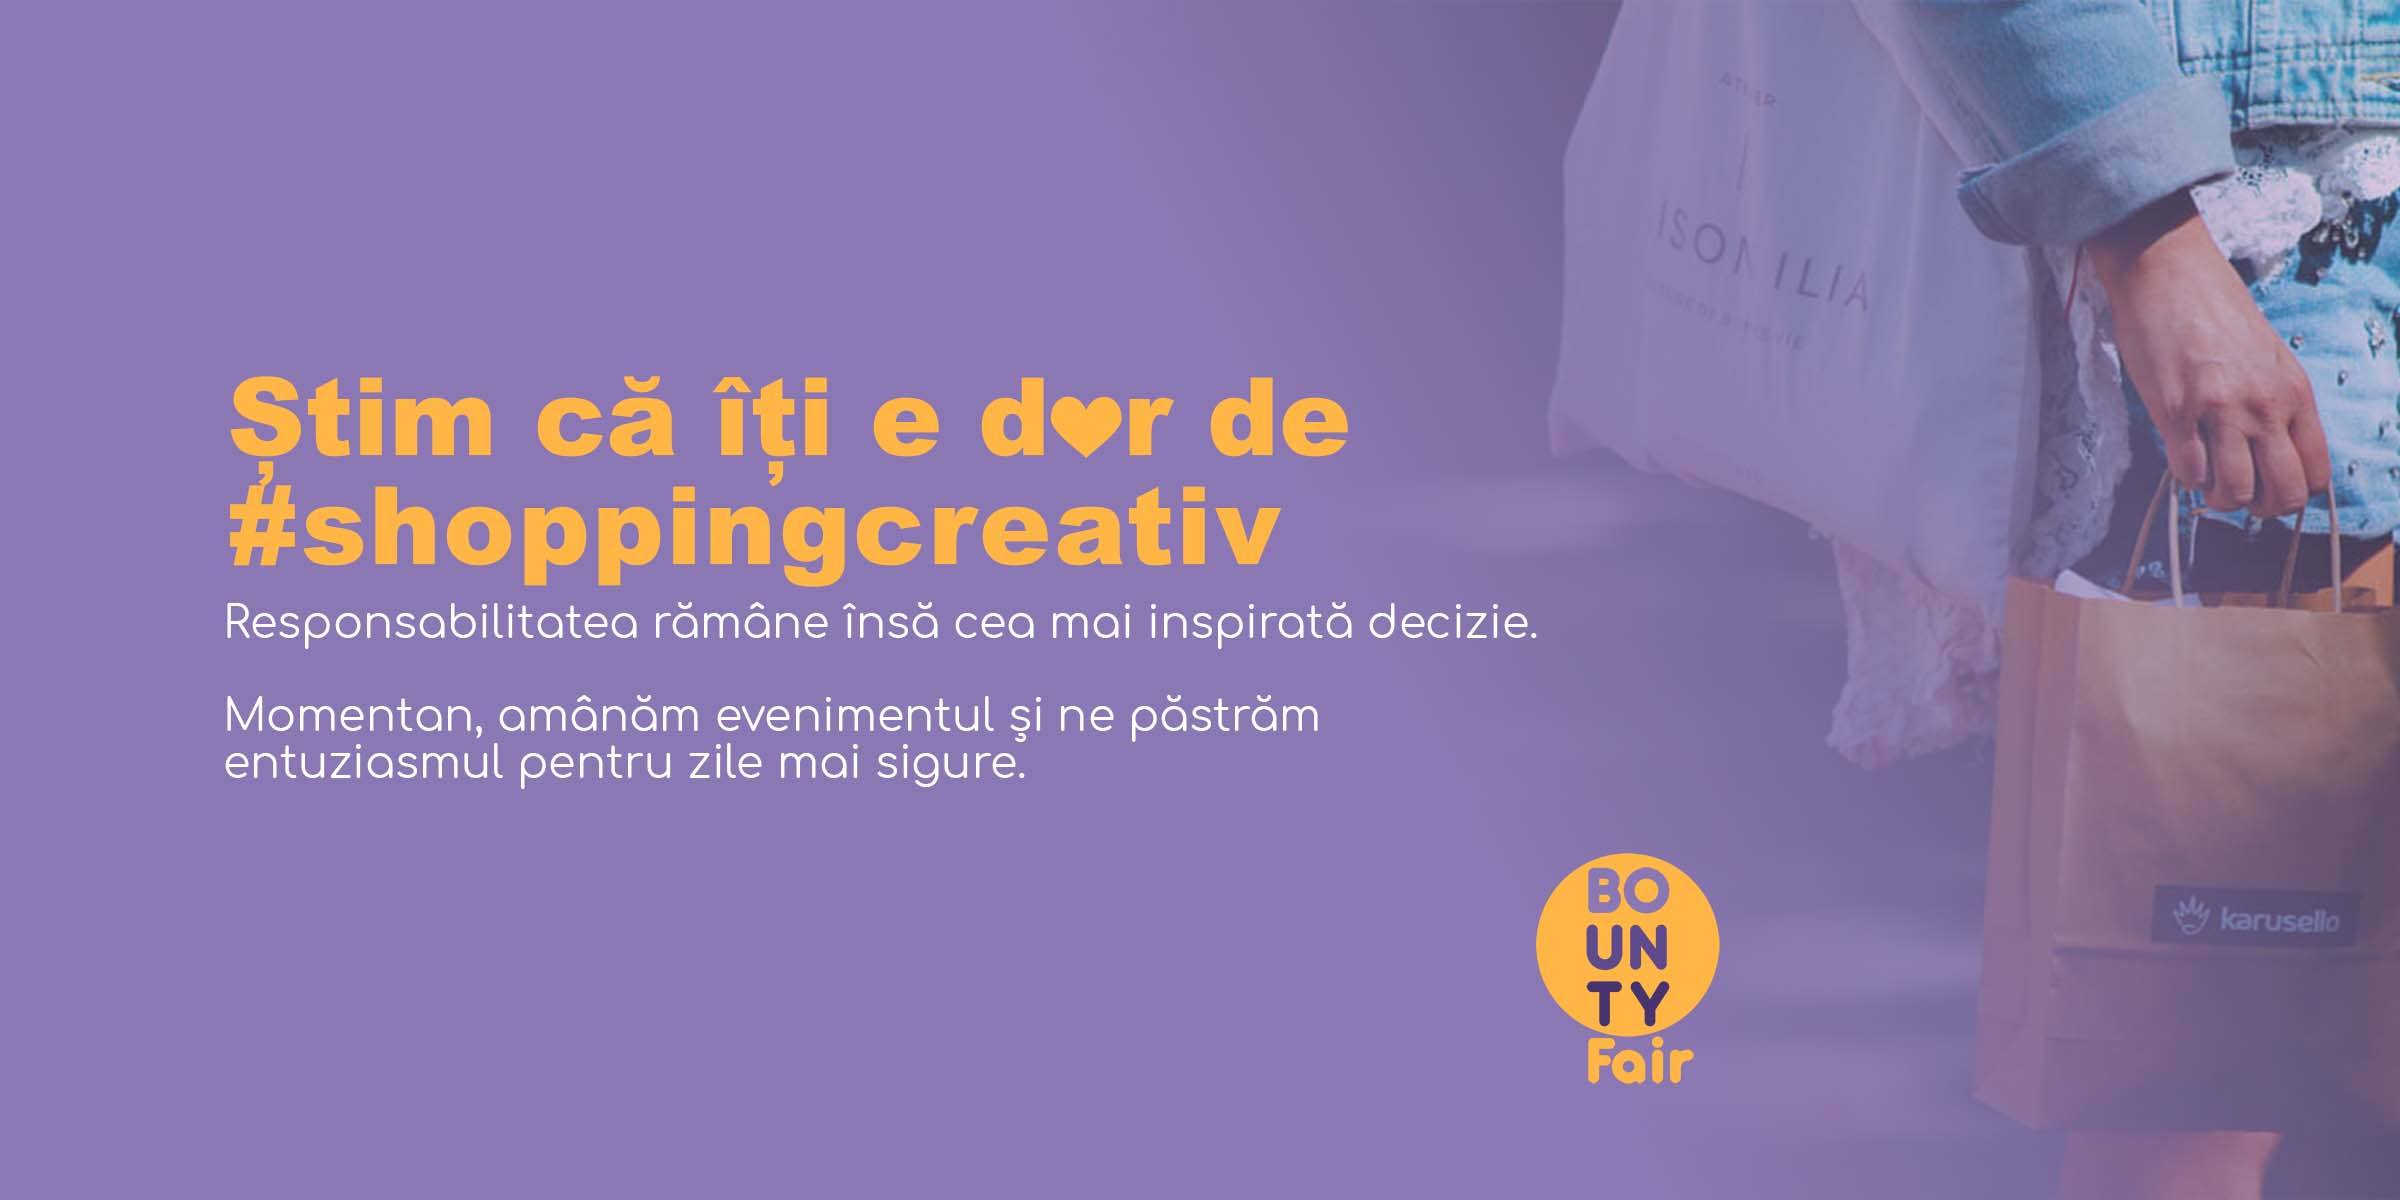 Bounty Fair – eveniment de shopping creativ